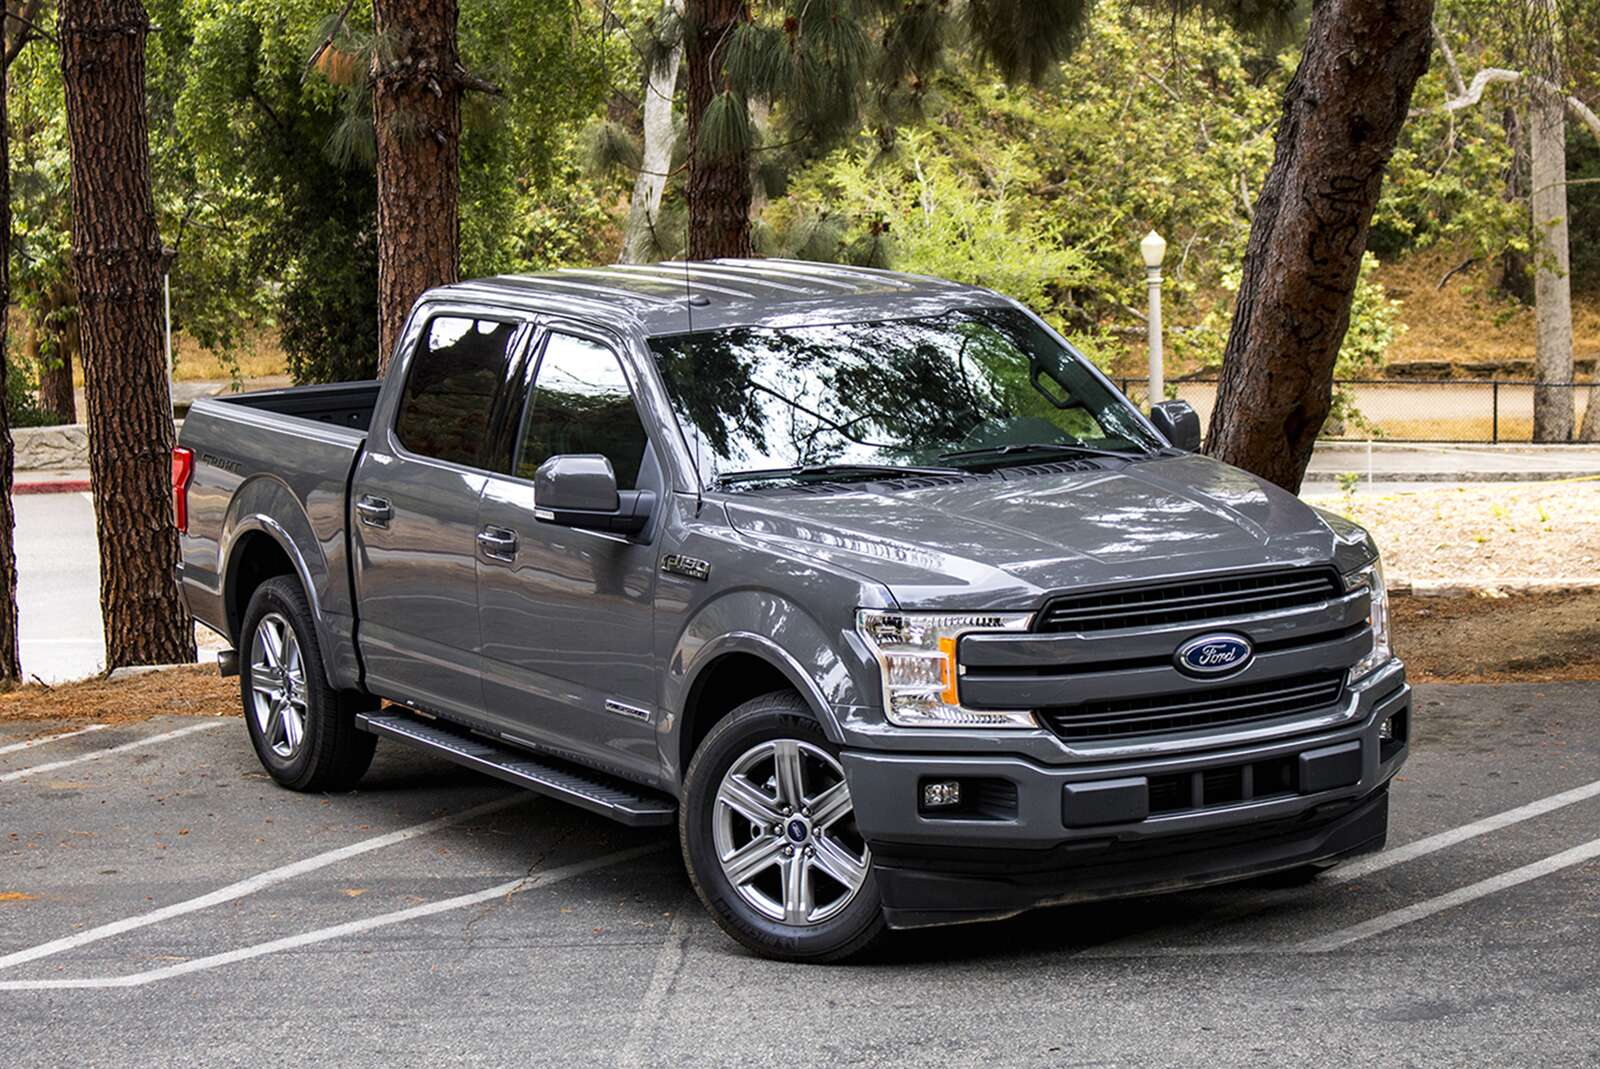 2018 ford f 150 diesel review how does 850 miles on a single tank sound the drive. Black Bedroom Furniture Sets. Home Design Ideas